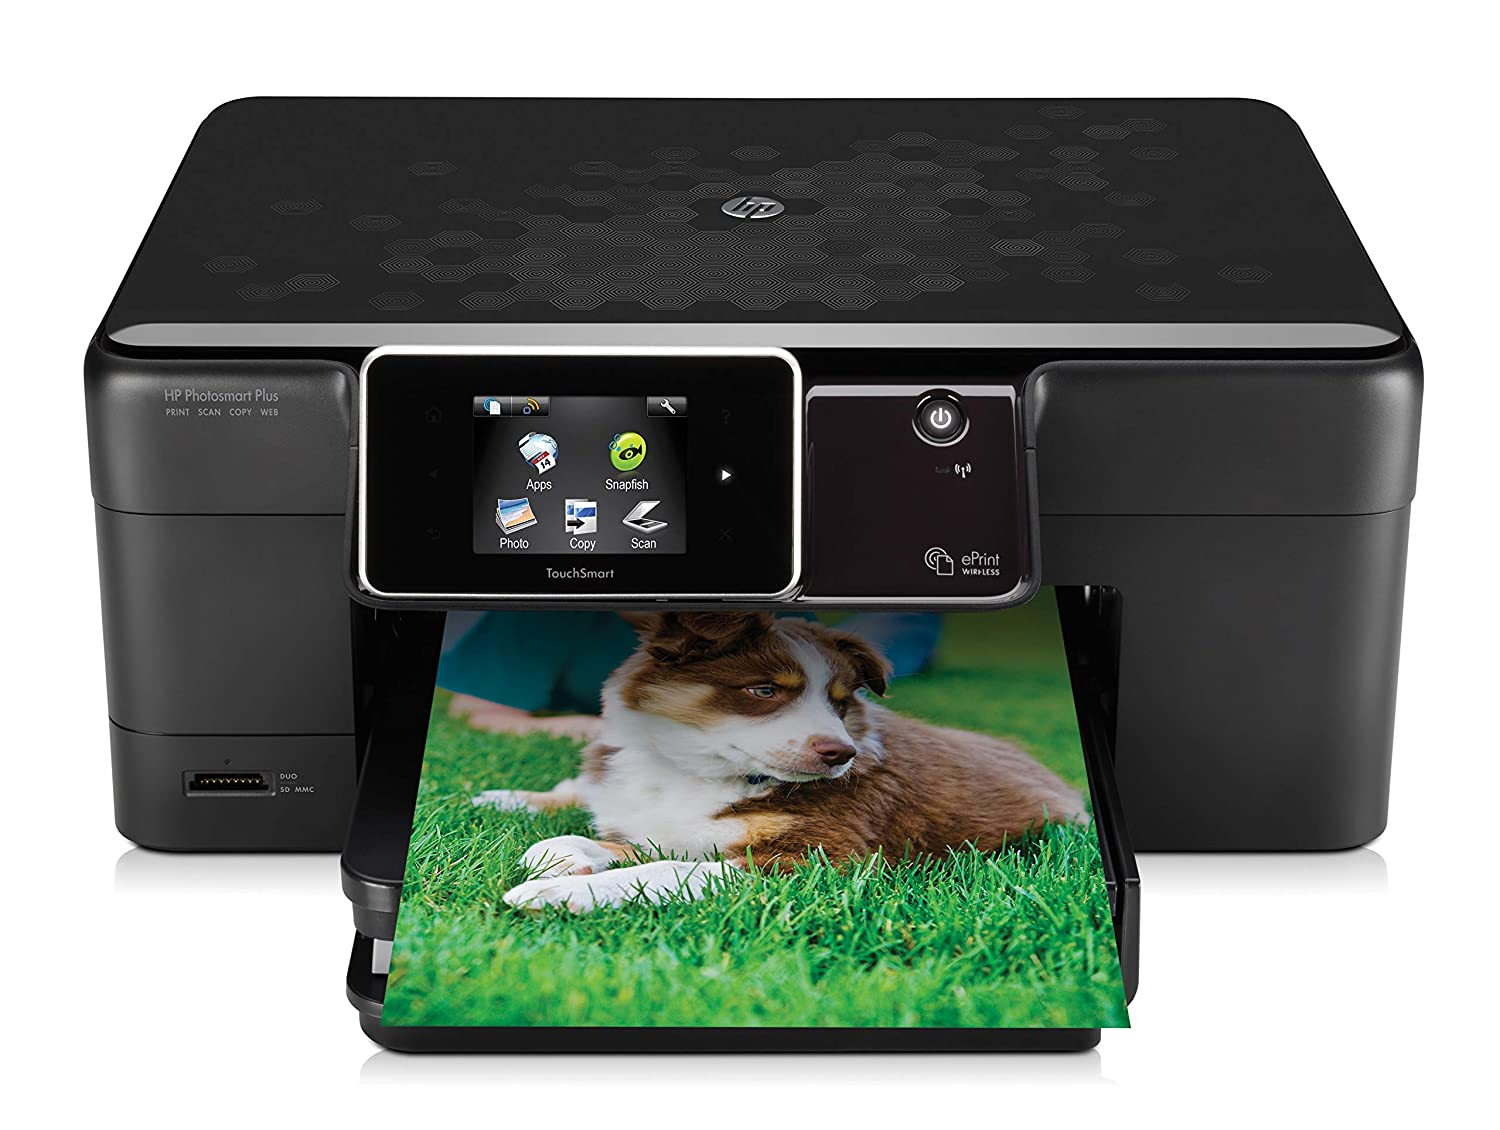 HP Photosmart Plus e-All-in-One Print/Scan/Copy - B210e ...